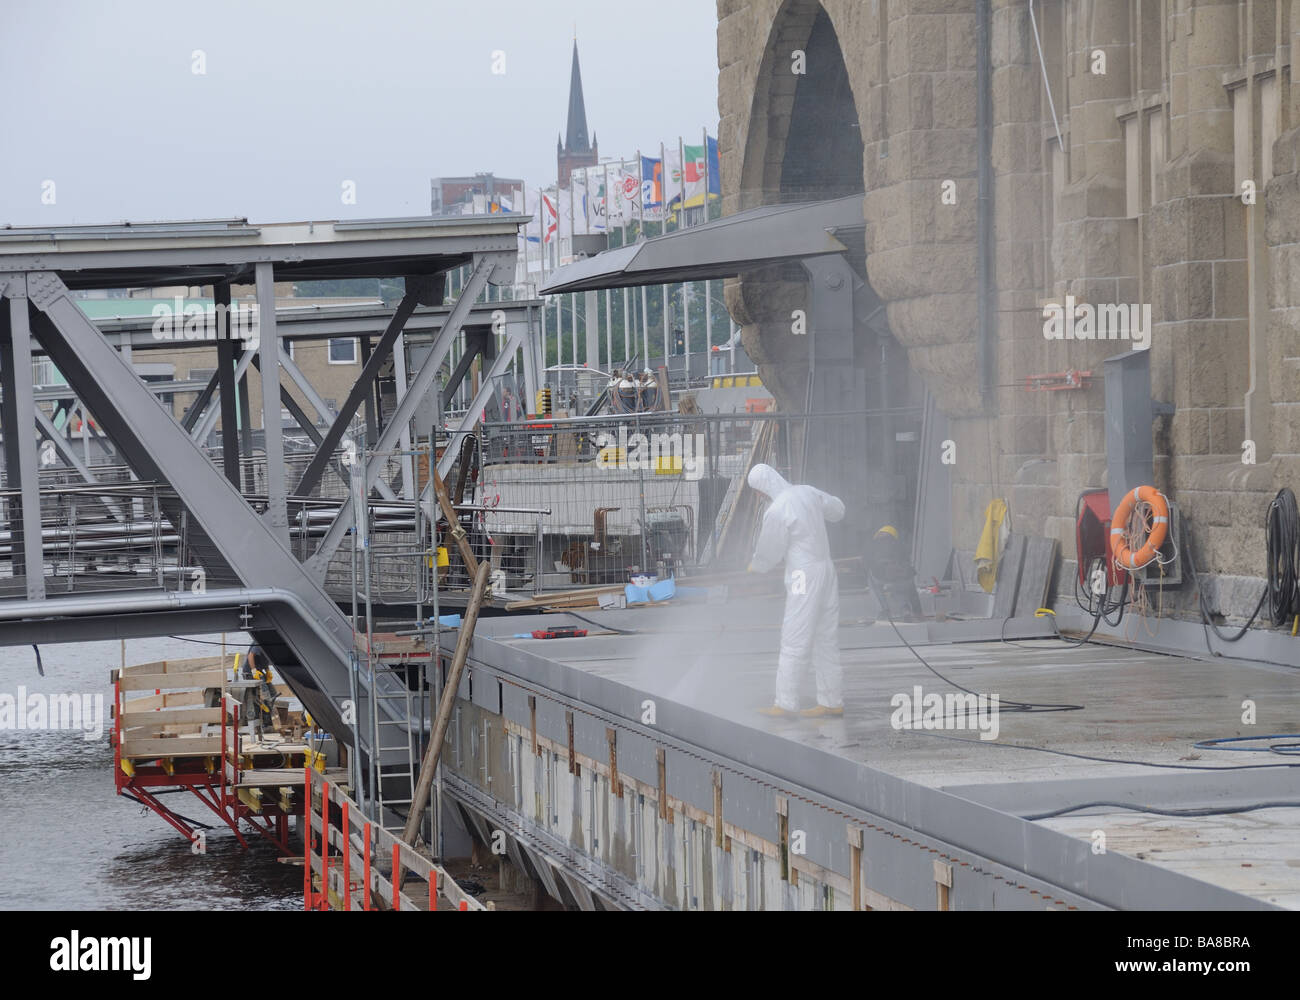 Workman cleaning a quai in the harbour of Hamburg, Germany. - Stock Image